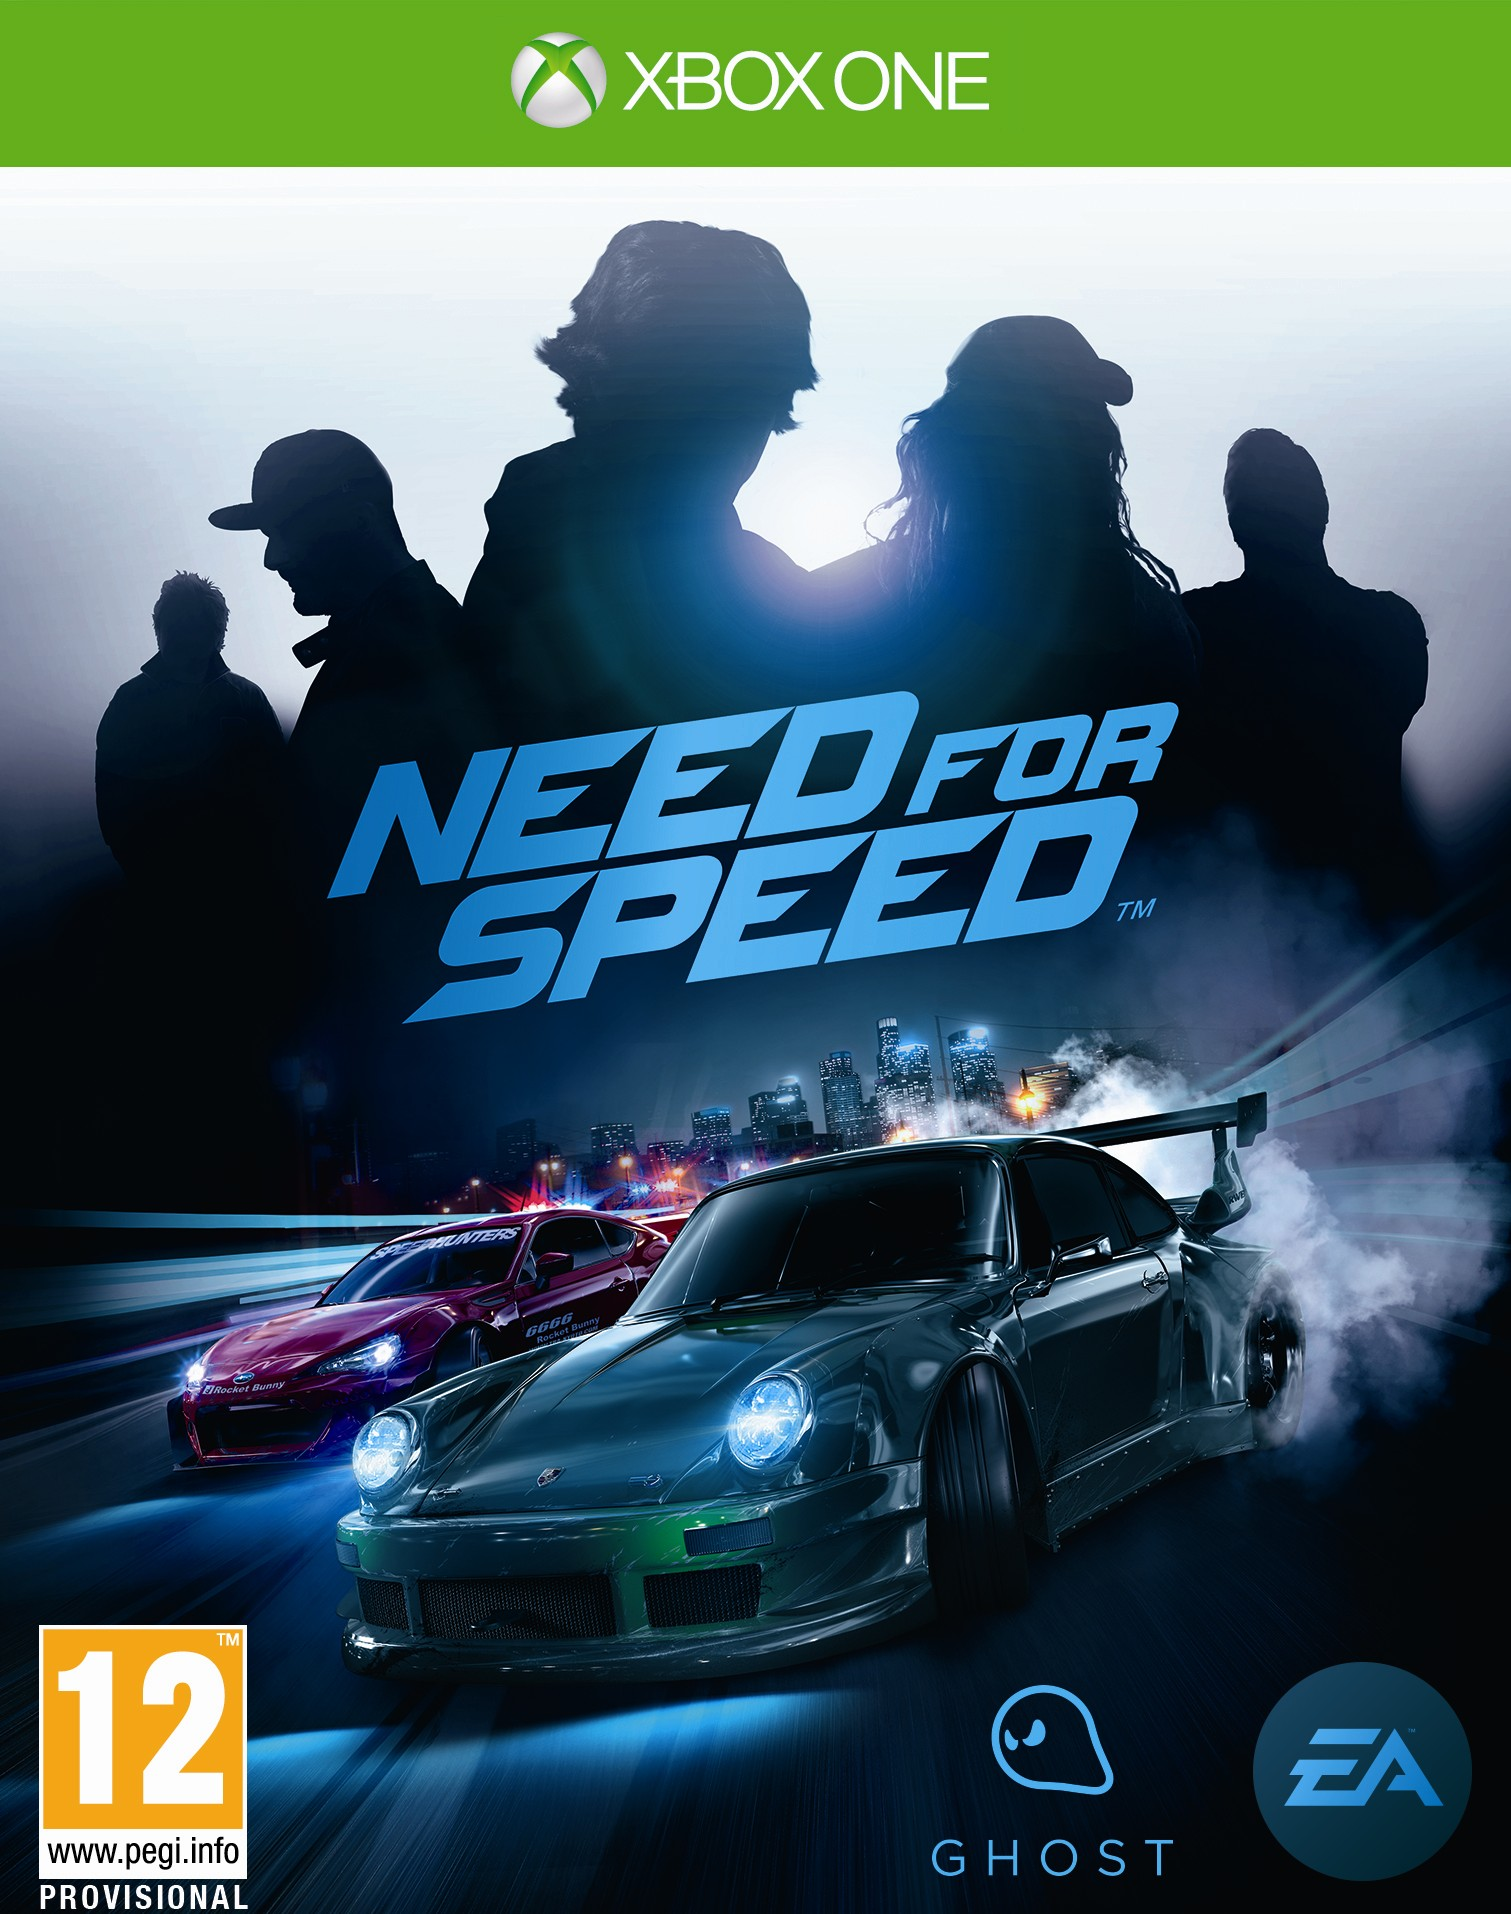 Box art - Need for Speed (2015)